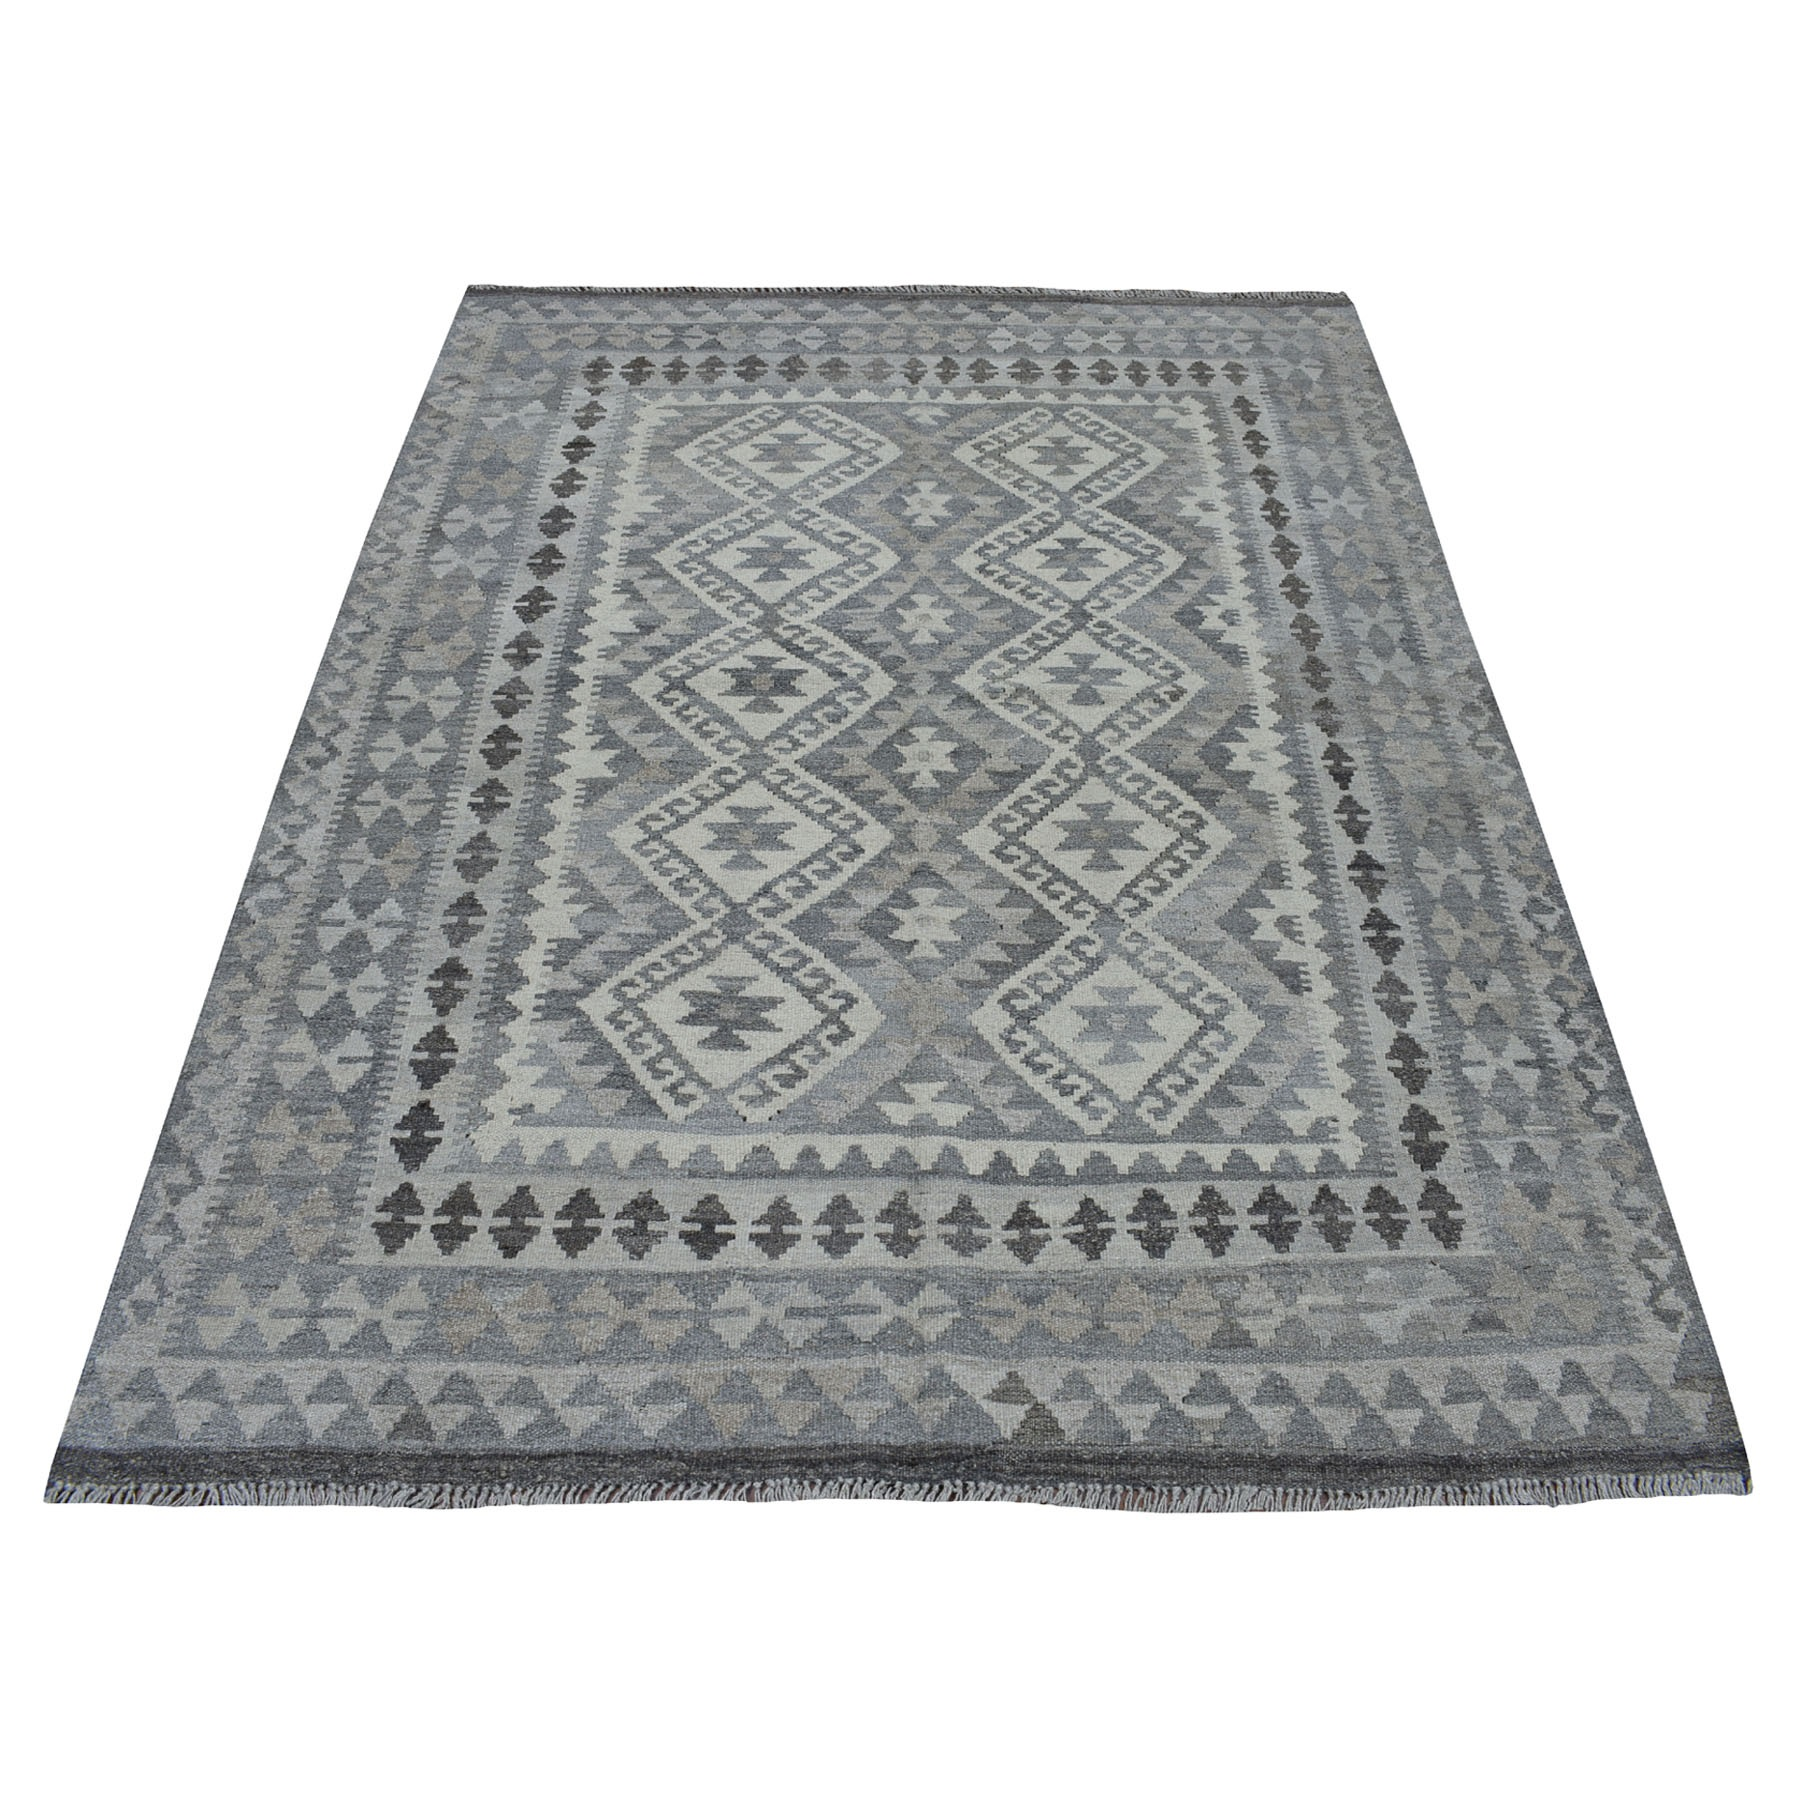 """5'1""""X6'7"""" Undyed Natural Wool Afghan Kilim Reversible Hand Woven Oriental Rug moaec0ab"""